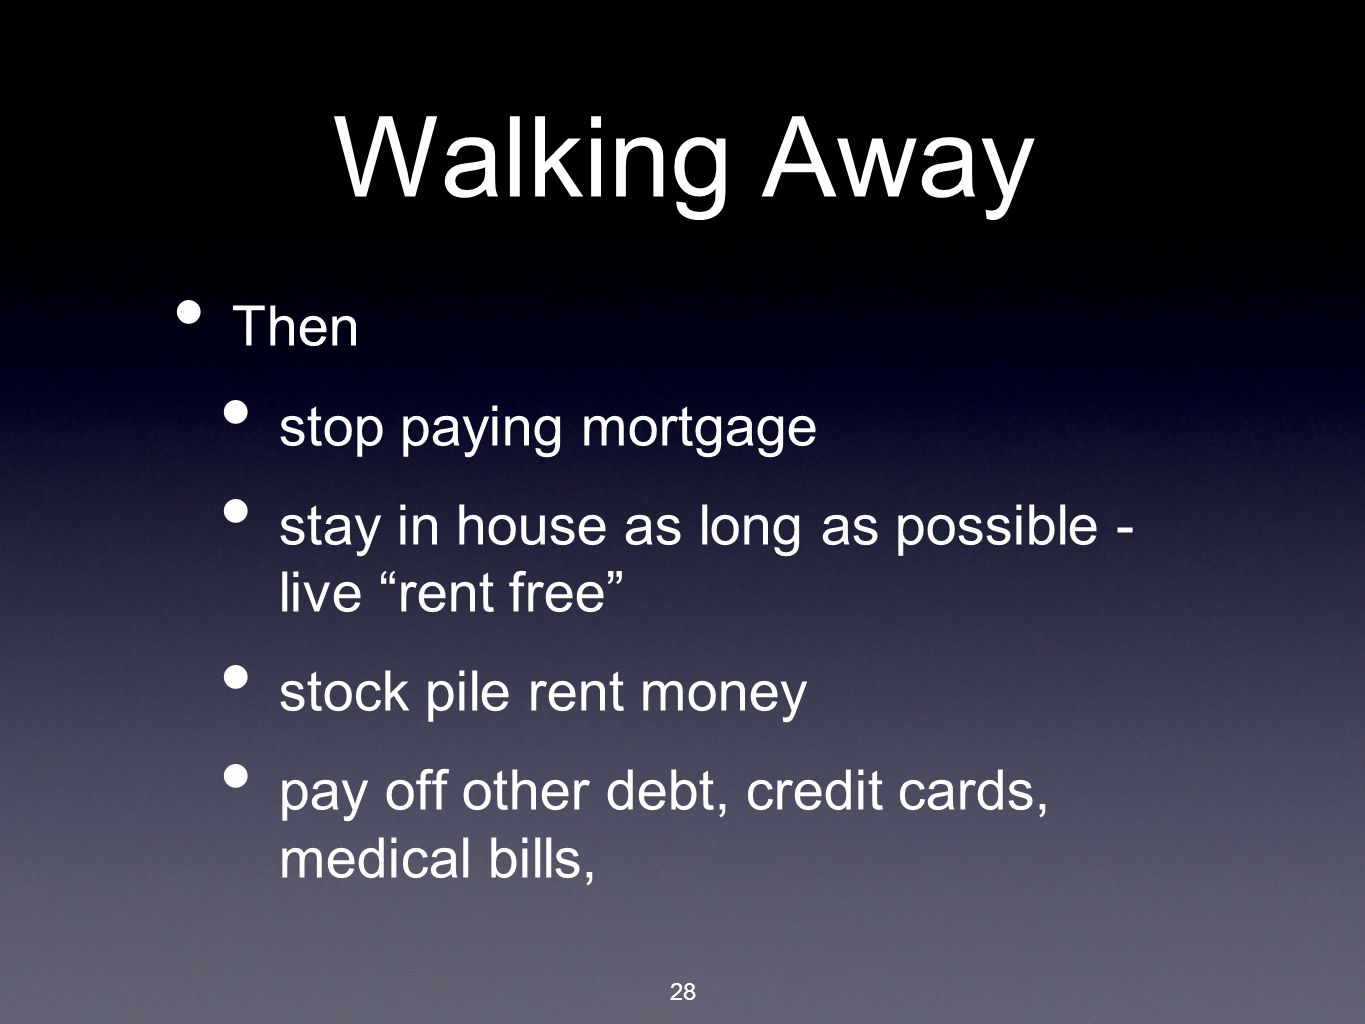 28 Walking Away Then stop paying mortgage stay in house as long as possible - live rent free stock pile rent money pay off other debt, credit cards, medical bills,